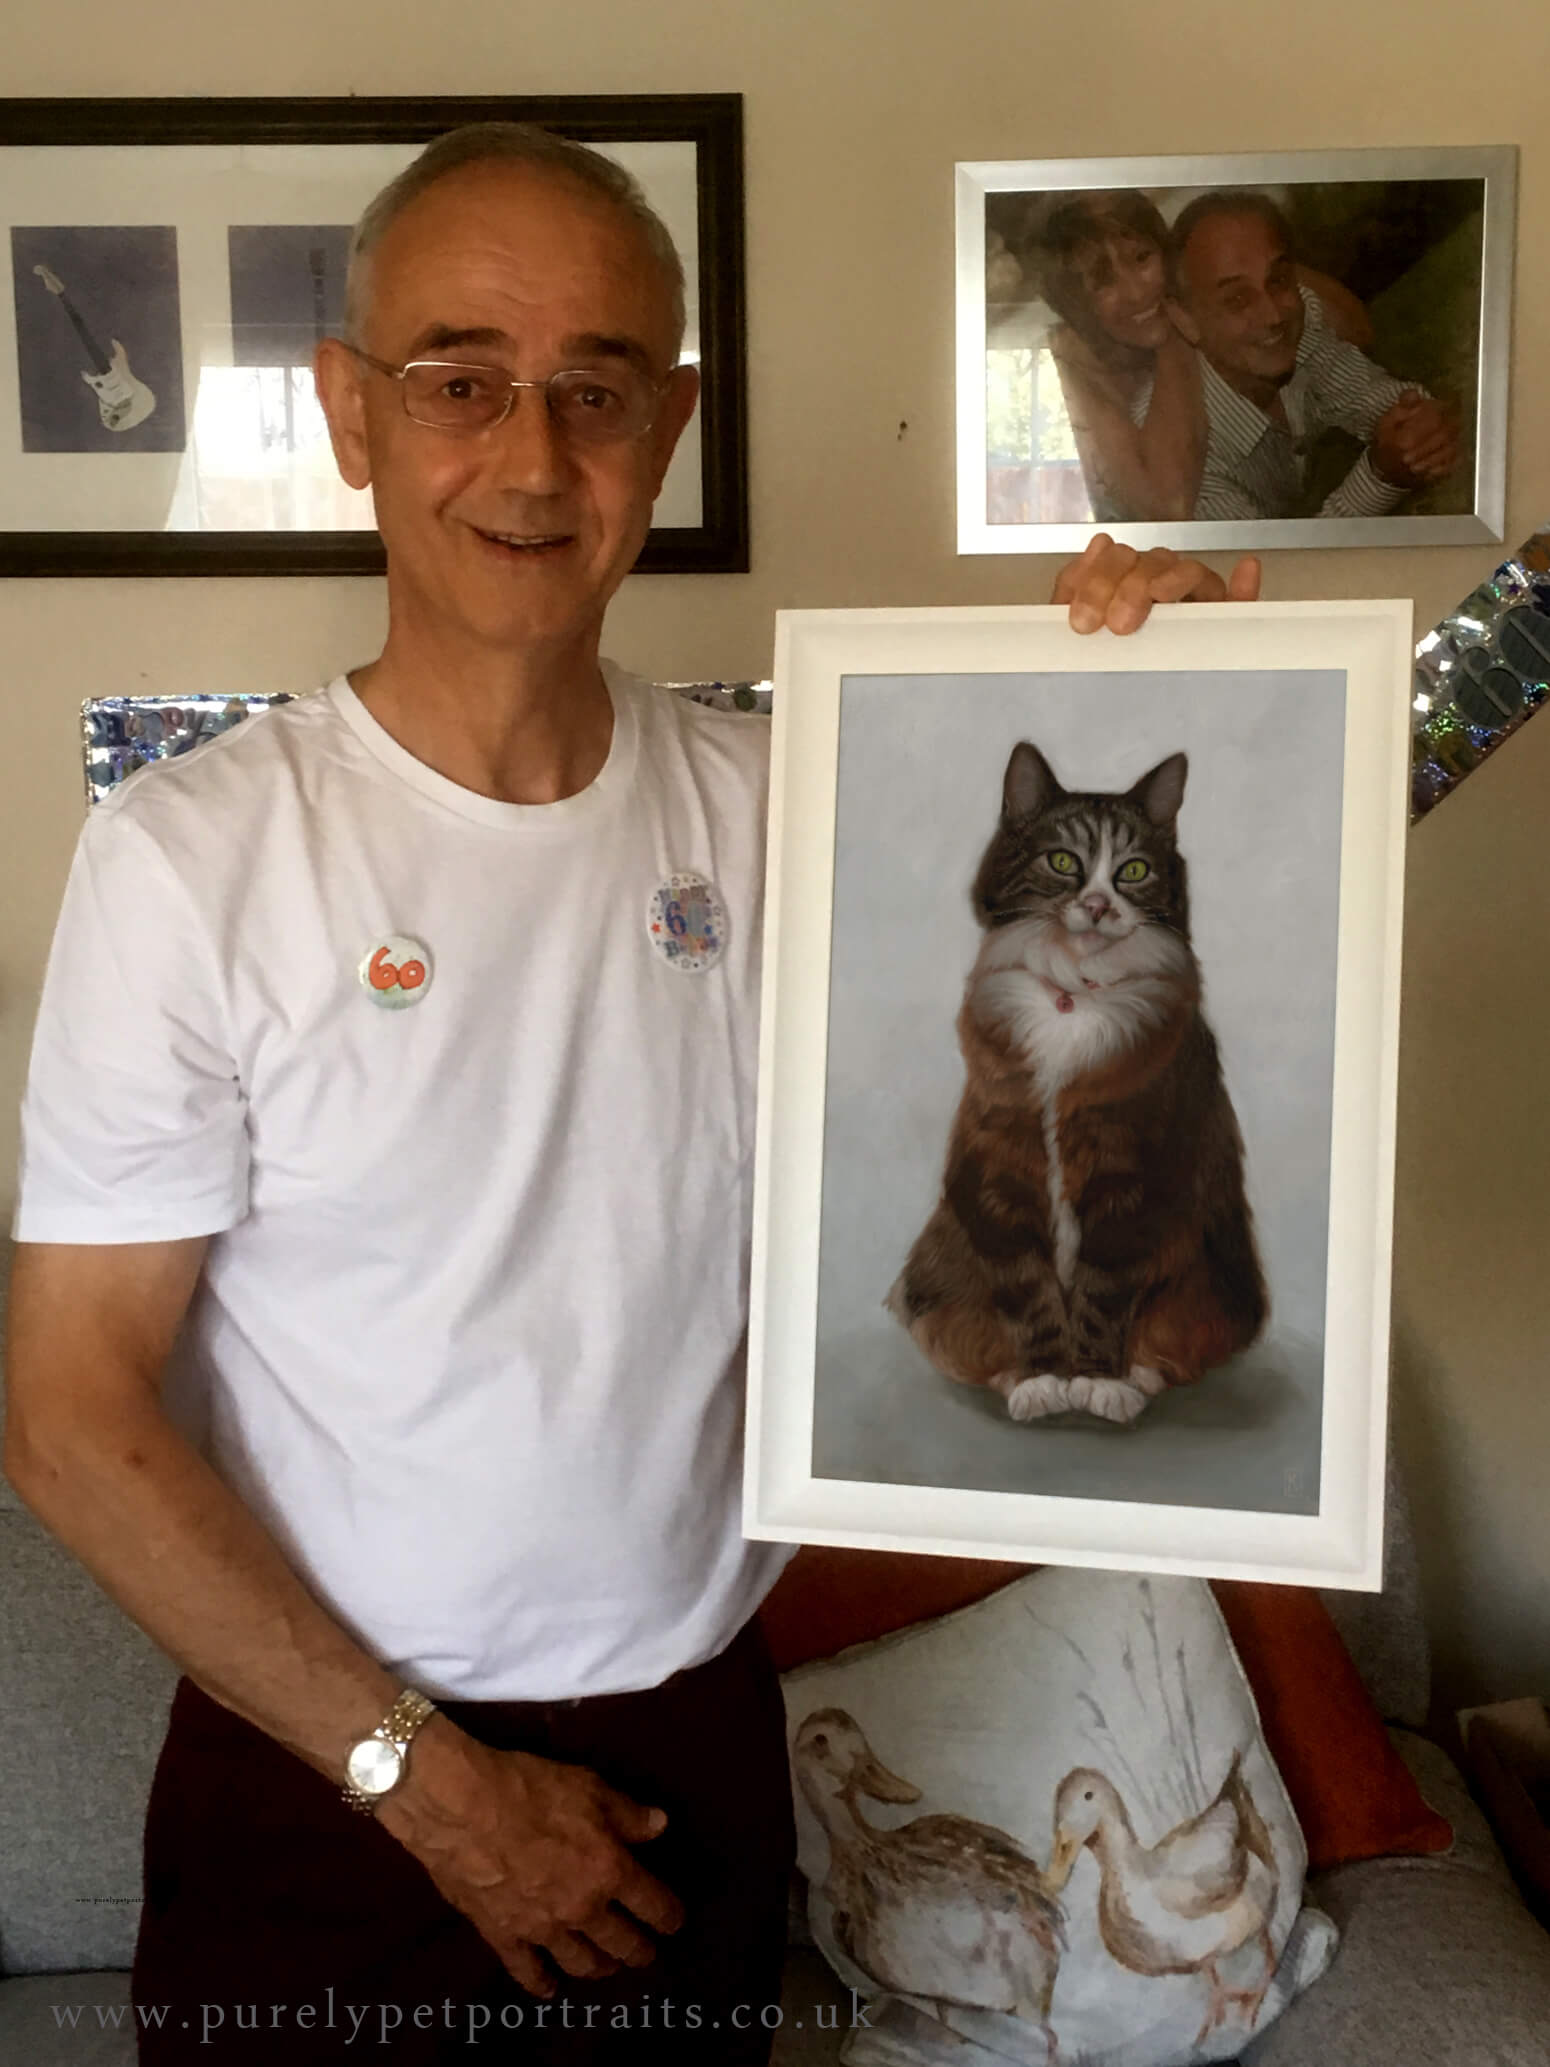 """Portrait of Misty - """"Hi KateMy husband Gary loved portrait of Misty, as expected we all got very emotional. Gary said you have captured her totally and it was almost like she was here for his birthday.Thank you so much Kate, you have been so lovely and very professional. You are a brilliant artist.""""Annette"""